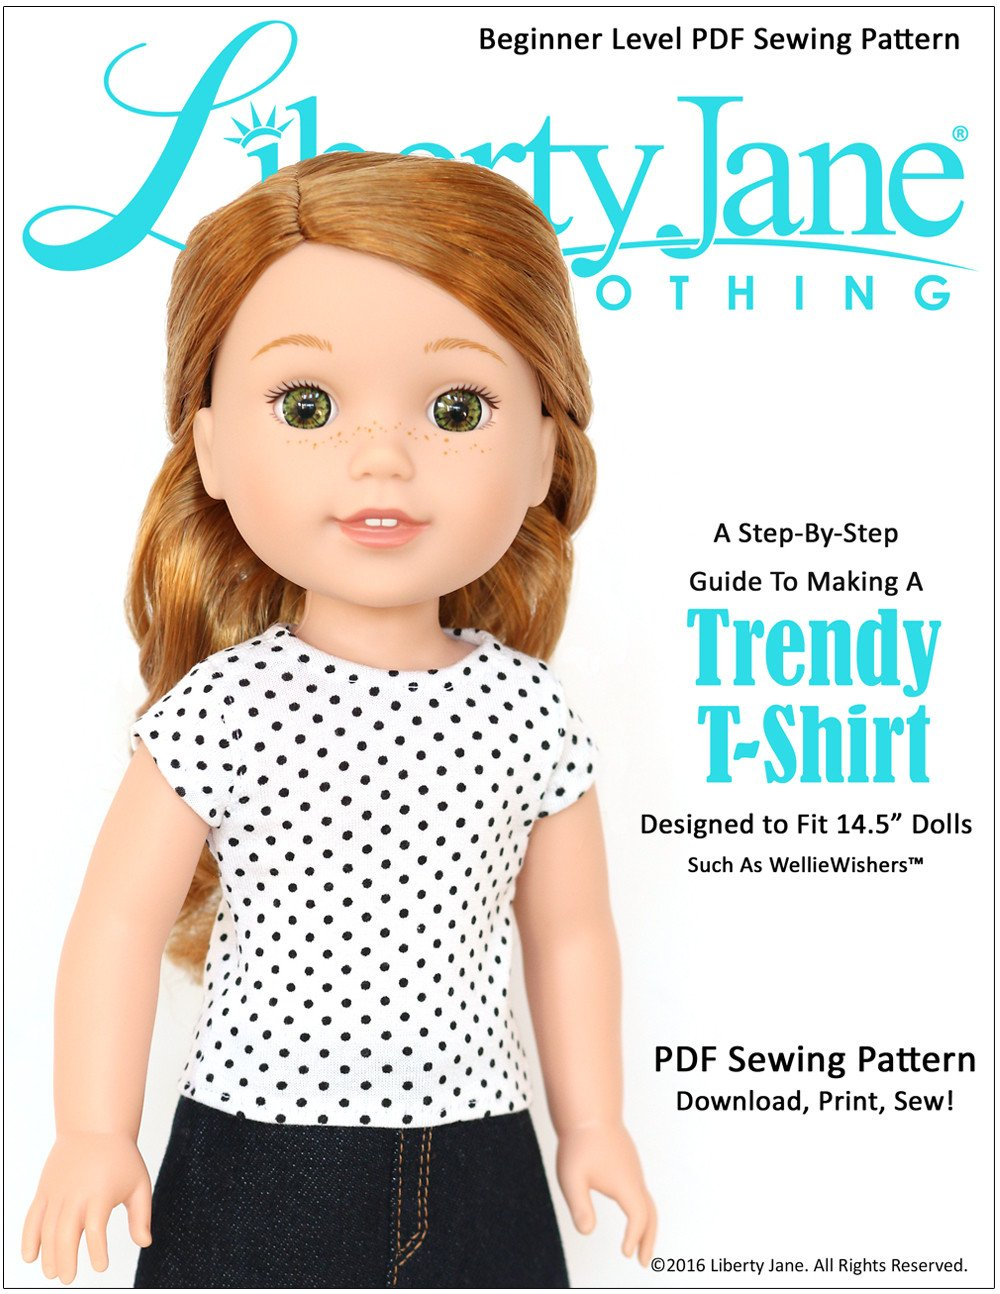 Free 18 Inch Doll Patterns Interesting Inspiration Design